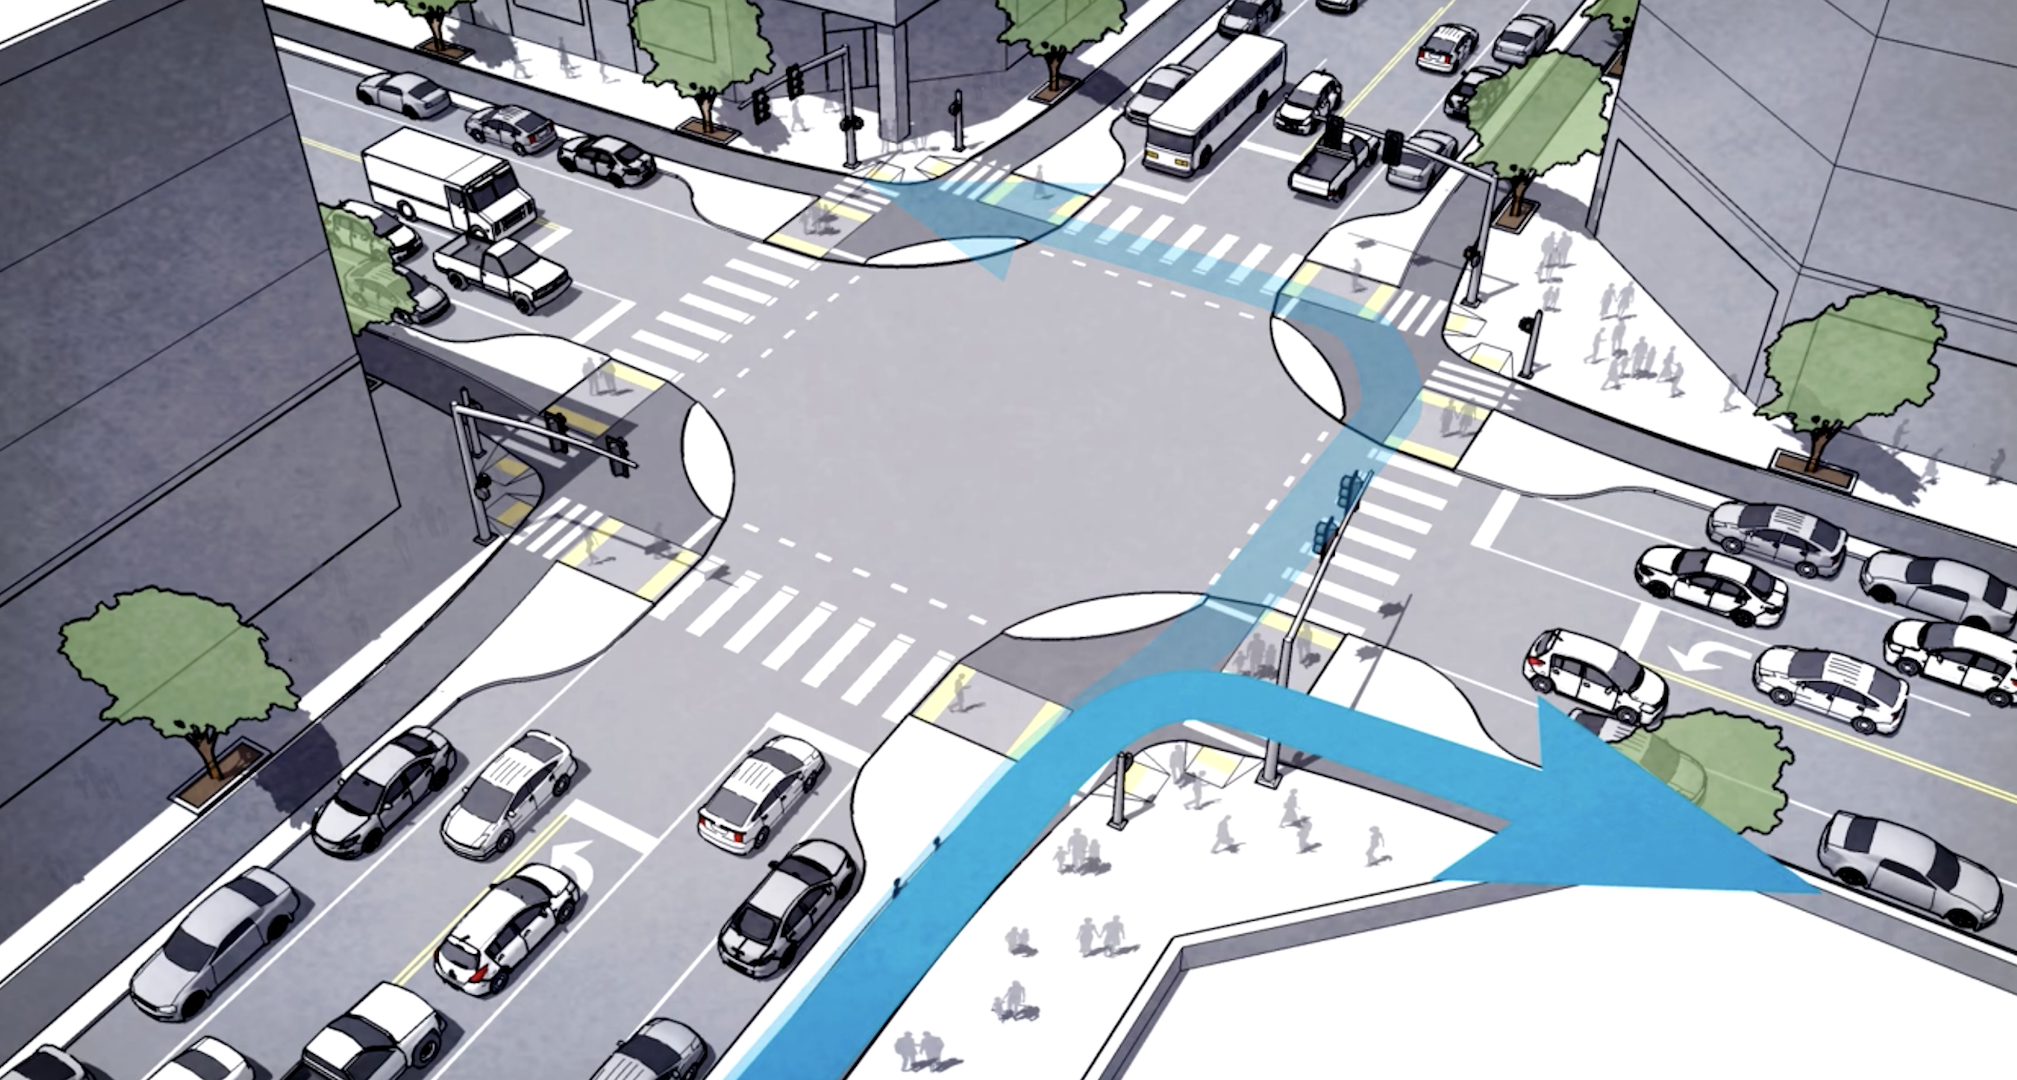 A proposed design for a safer, more equitable intersection for transit, pedestrians, cyclists, and cars.